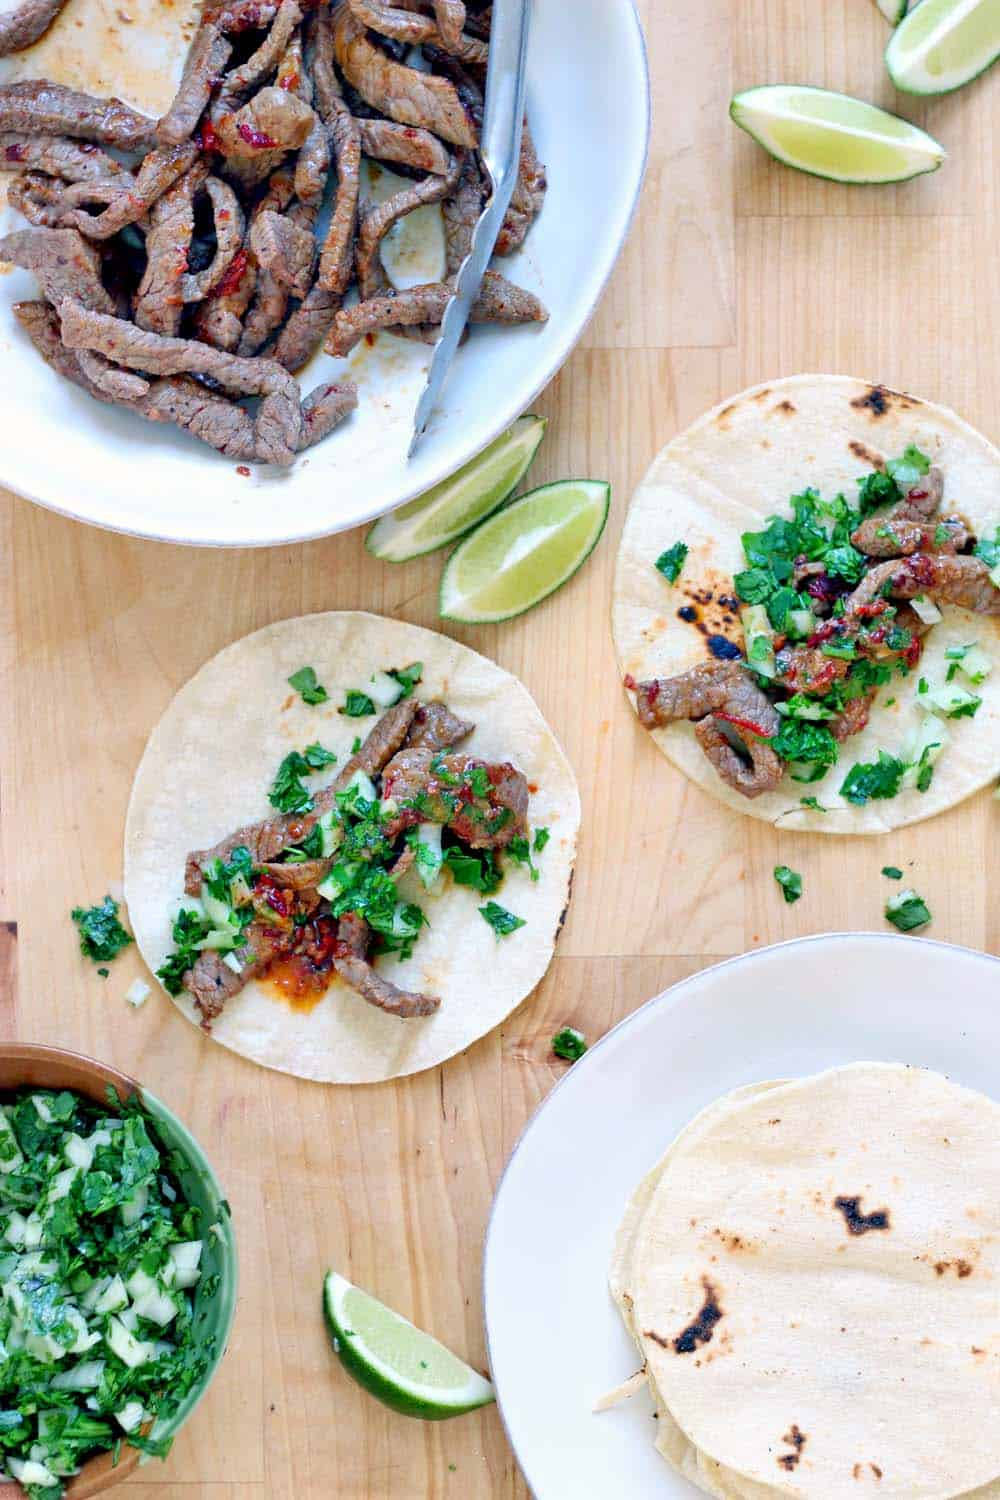 These chipotle steak tacos are topped with a simple mixture of cilantro and onion, with a drizzle of the pan sauce leftover from cooking the steak. They take only ten minutes to make and are perfectly smoky and spicy!